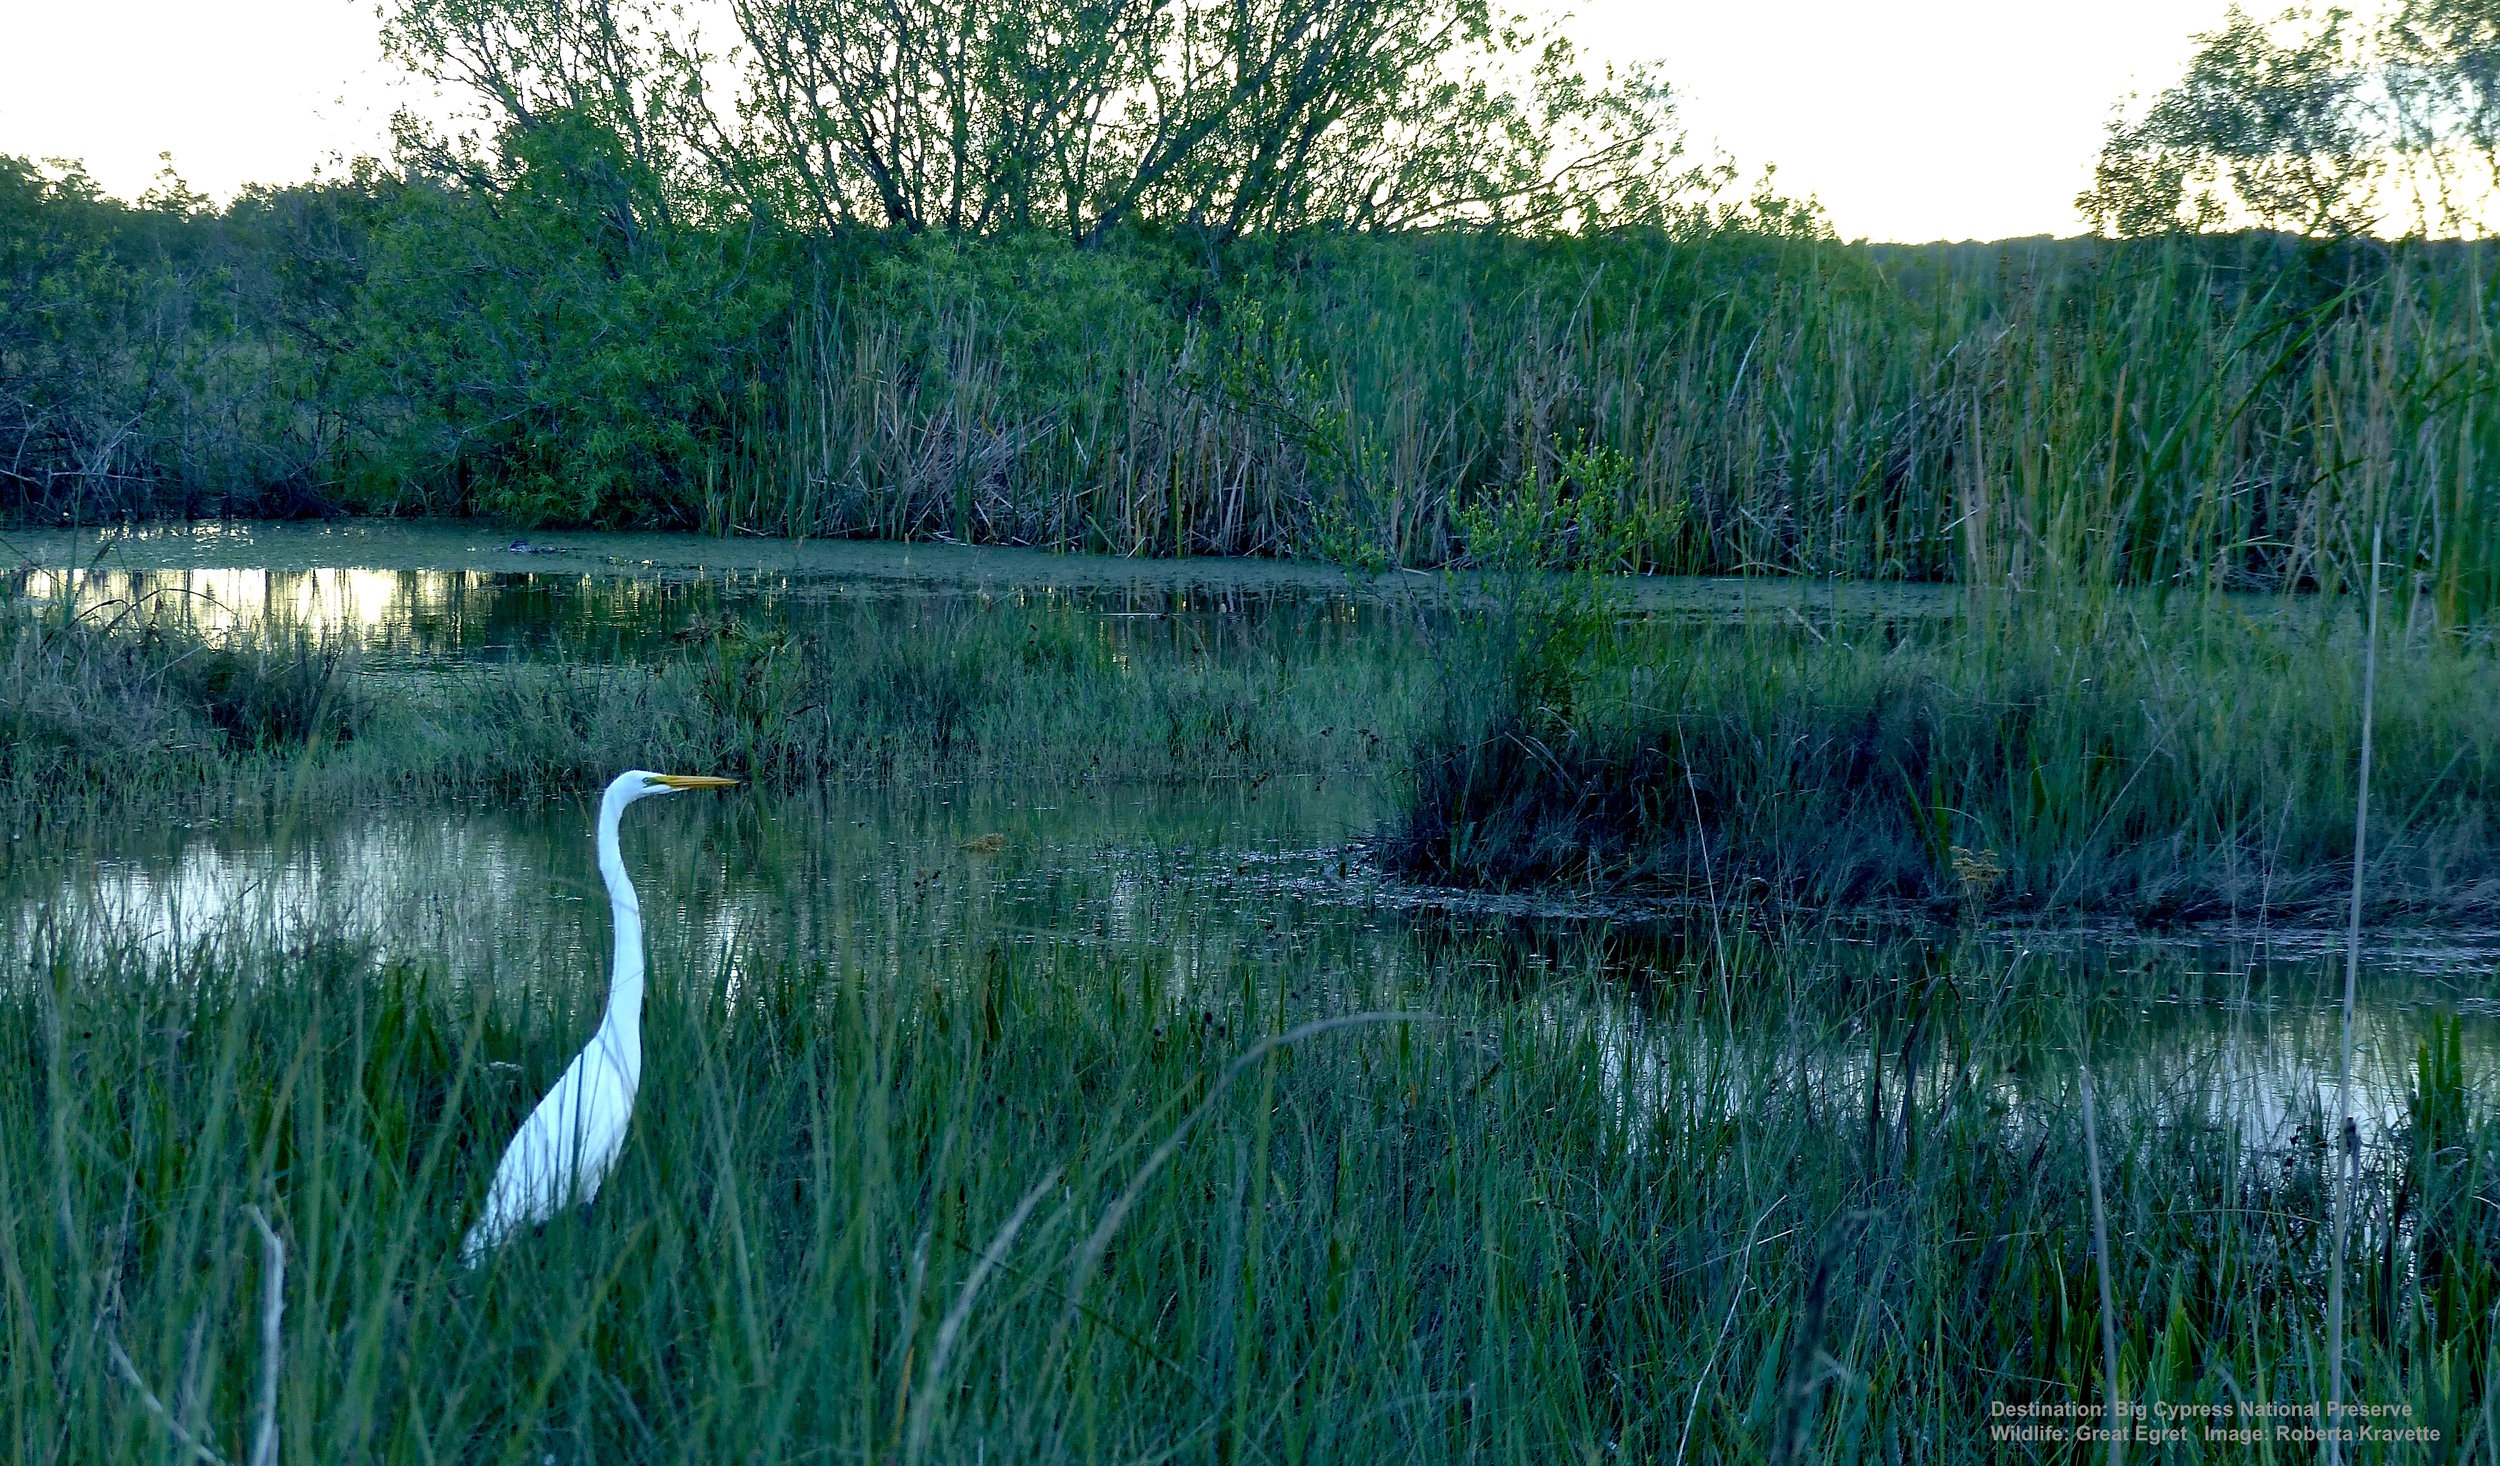 AT DUSK, A GREAT EGRET RISES LIKE A QUESTION MARK OUT OF THE MARSH GRASS. BY THE END OF THE 1800'S 95% OF ALL GREAT EGRETS WERE GONE, HUNTED TO THE BRINK OF EXTINCTION for their feathers. TODAY, THANKS TO CONSERVATION EFFORTS THEY ARE COMING BACK. IMAGE: ©ROBERTA KRAVETTE